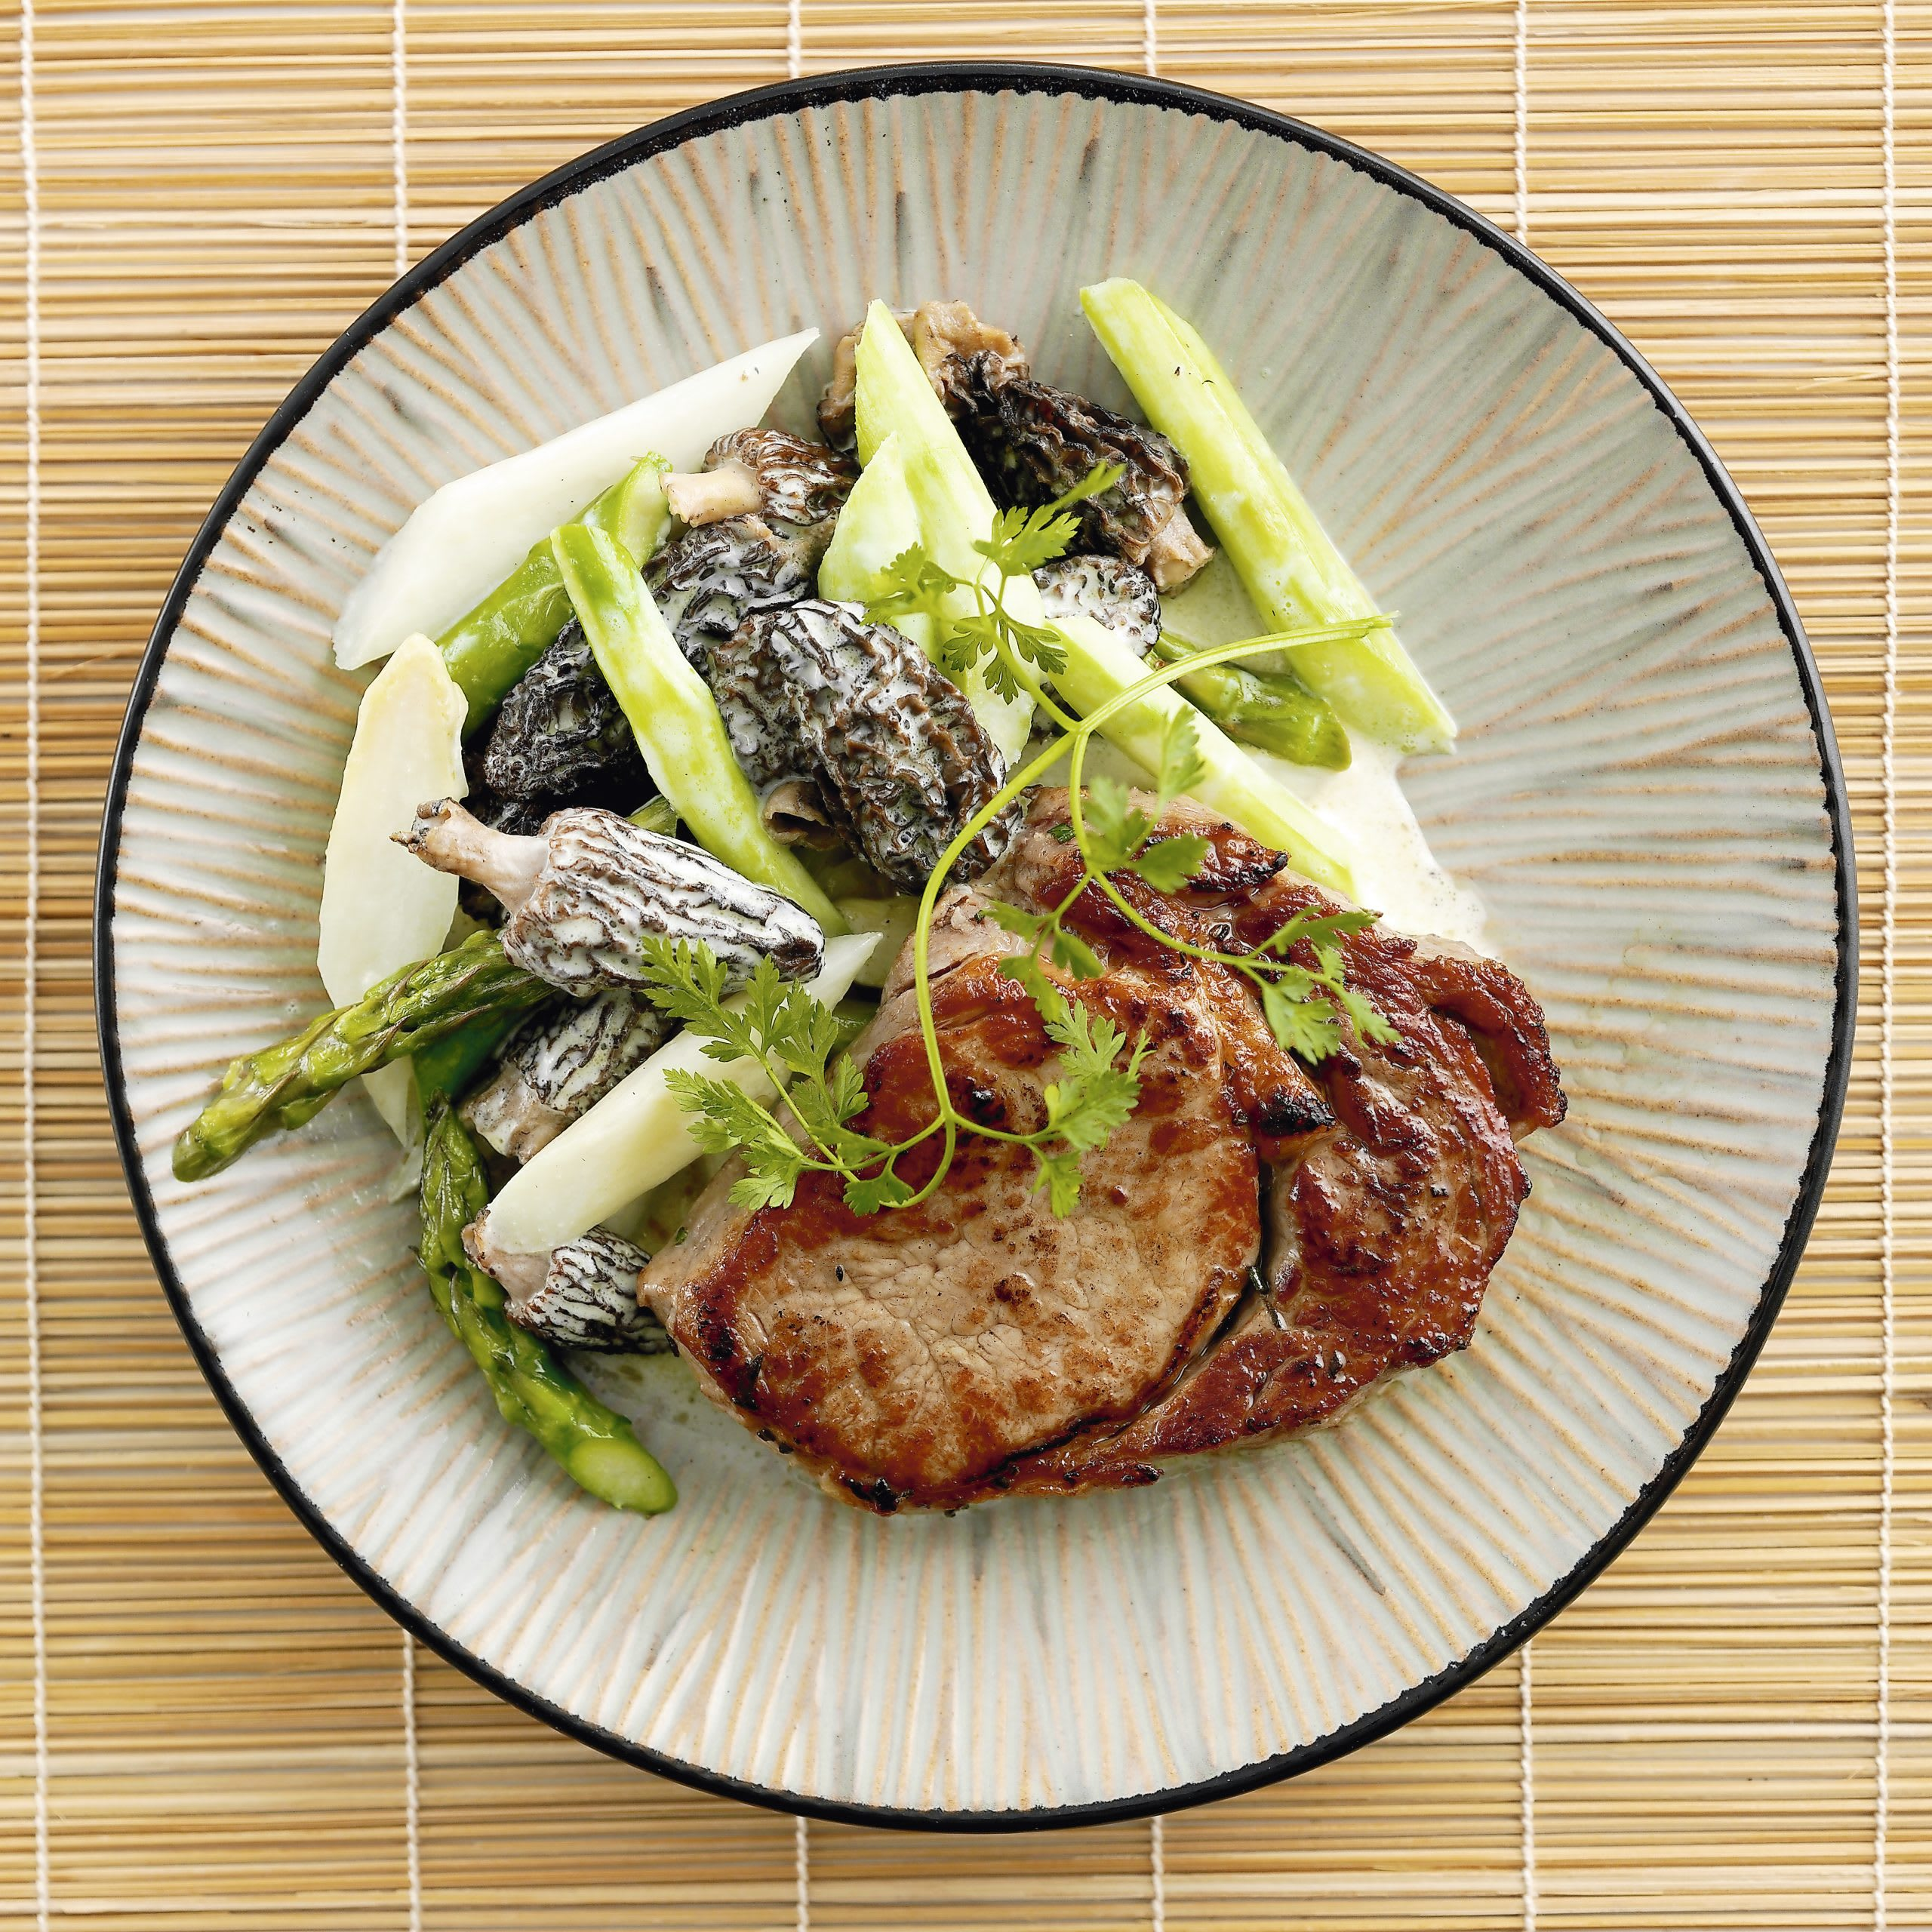 Steaks de veau, asperges et morilles (low carb)